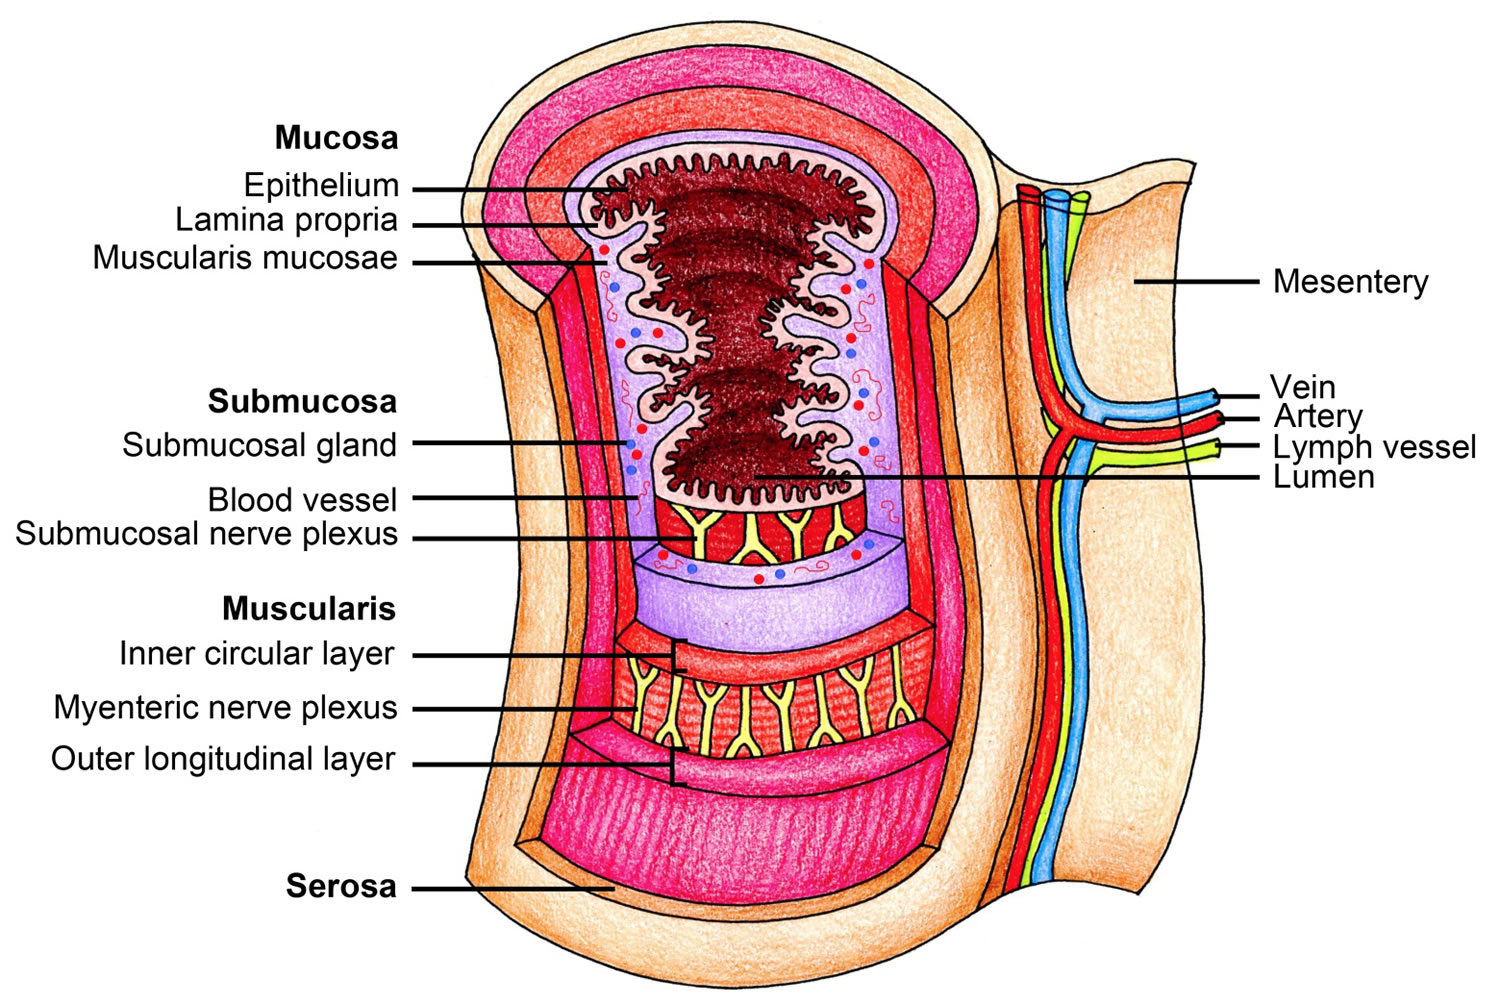 The Human Esophagus - Functions and Anatomy and Problems